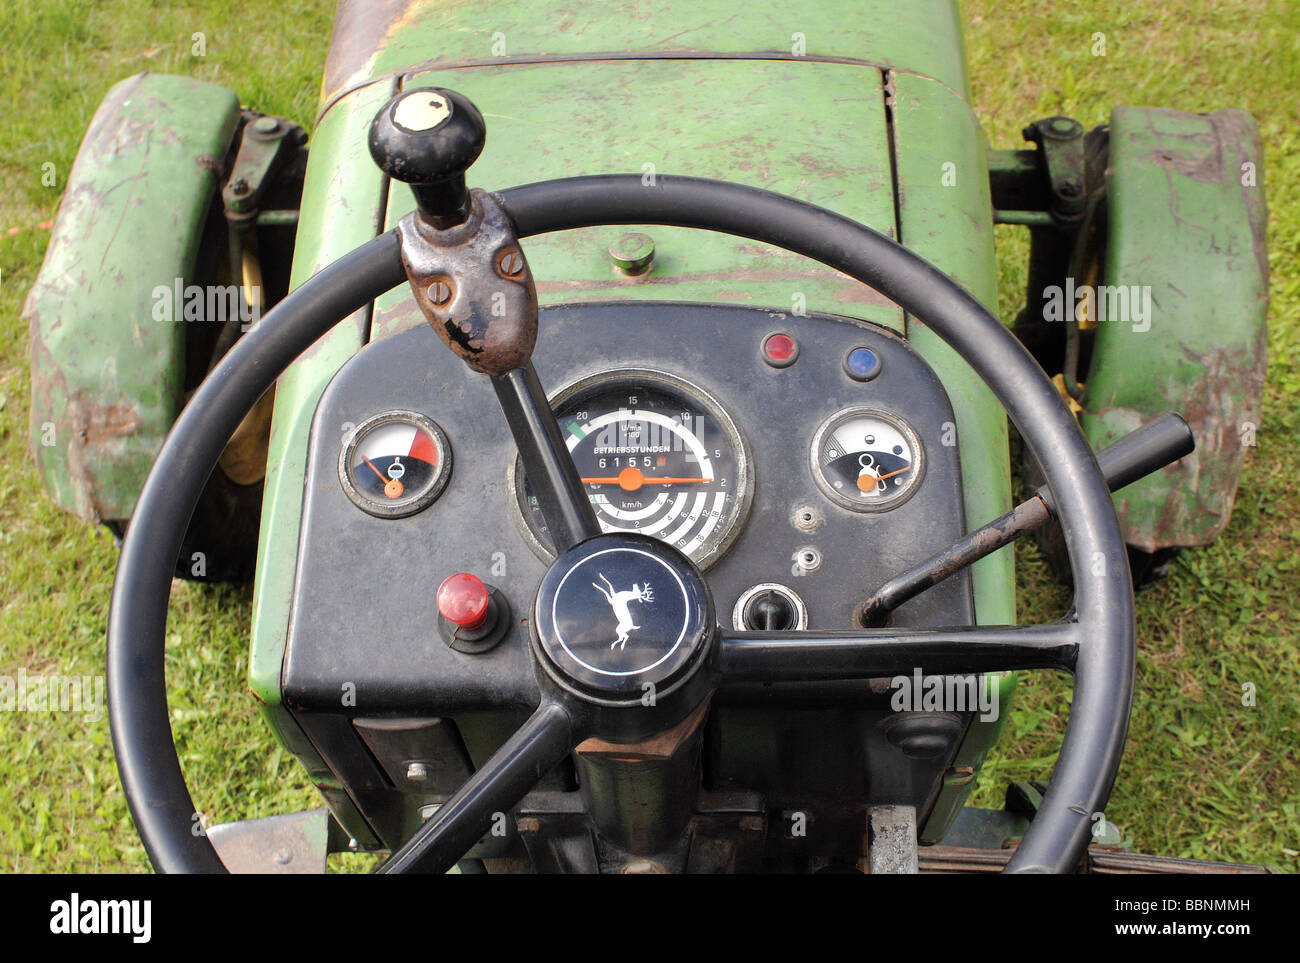 1010 John Deere Dash Light : Transport transportation cars tractor john deere